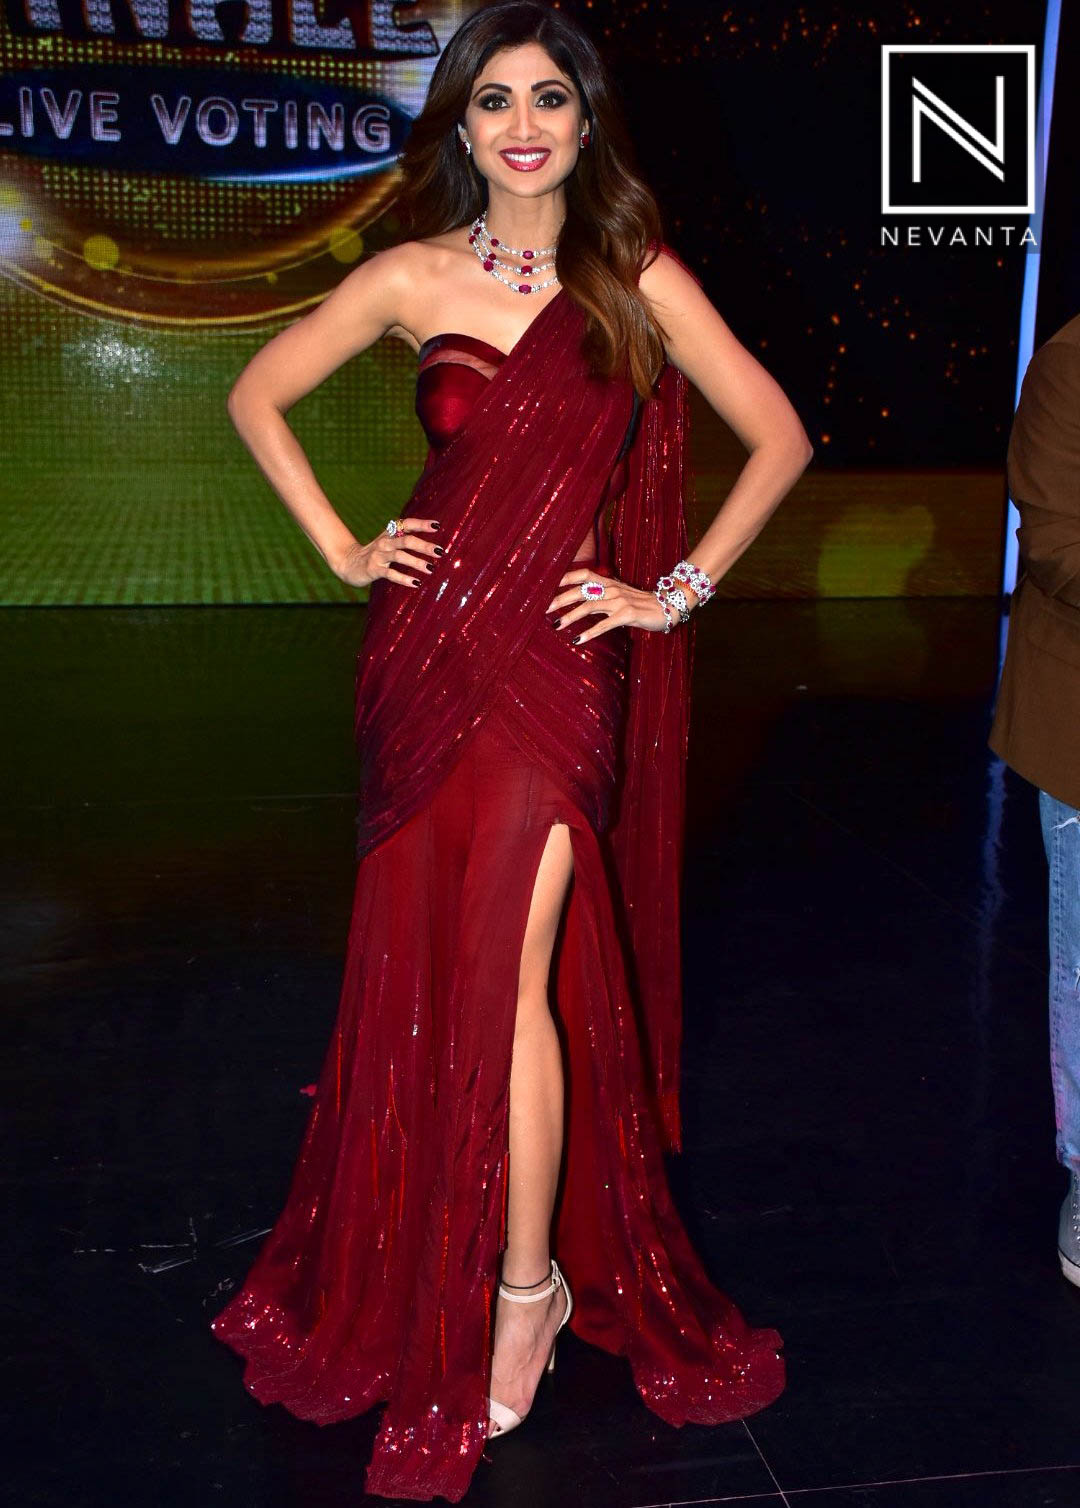 Shilpa Shetty Kundra Wears a Custom-Made Oxblood Sari Gown by Manish ...